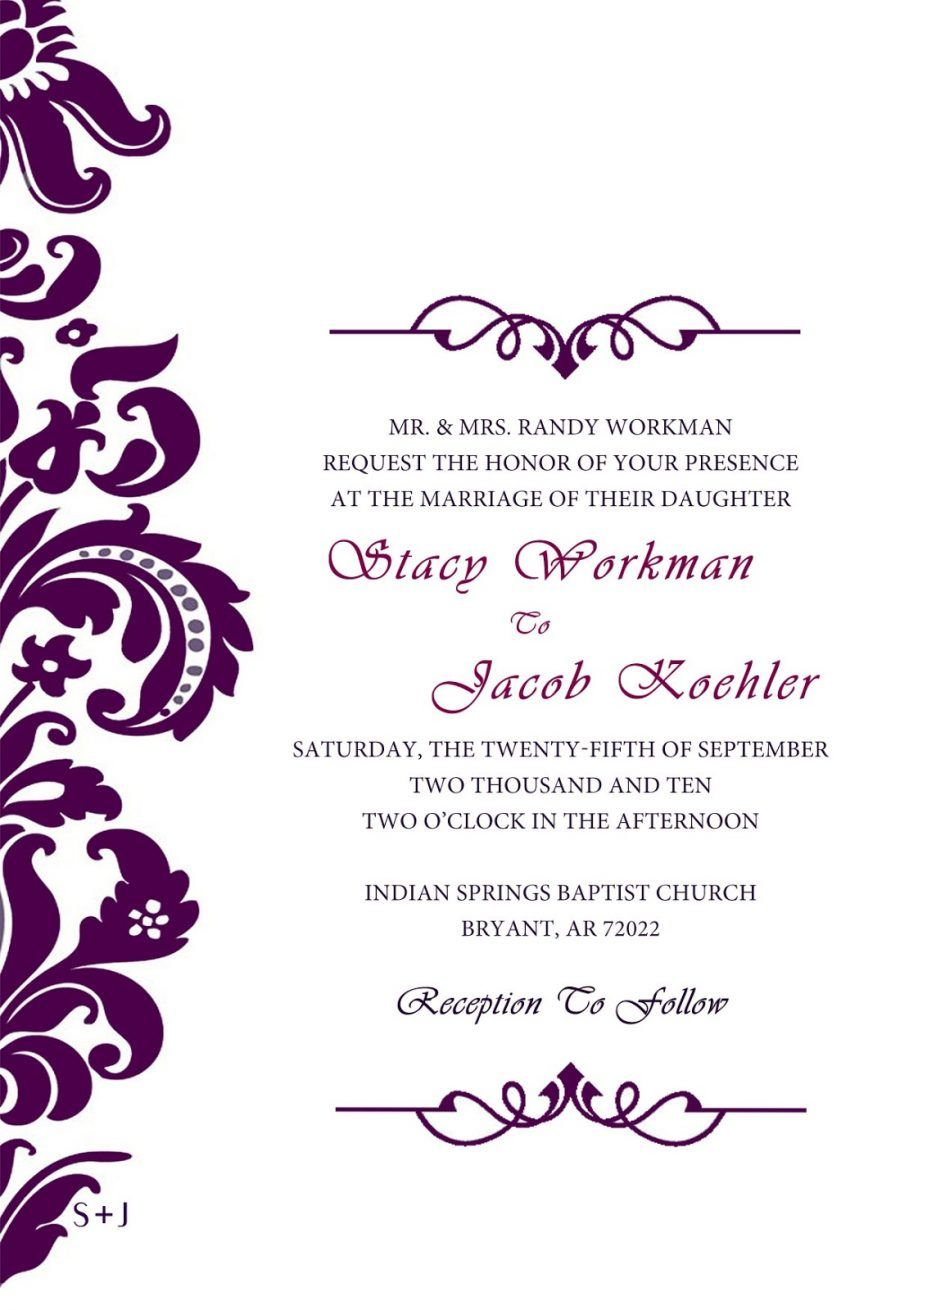 wedding invitation templates invitations wedding formal wedding – Template Invitation Card